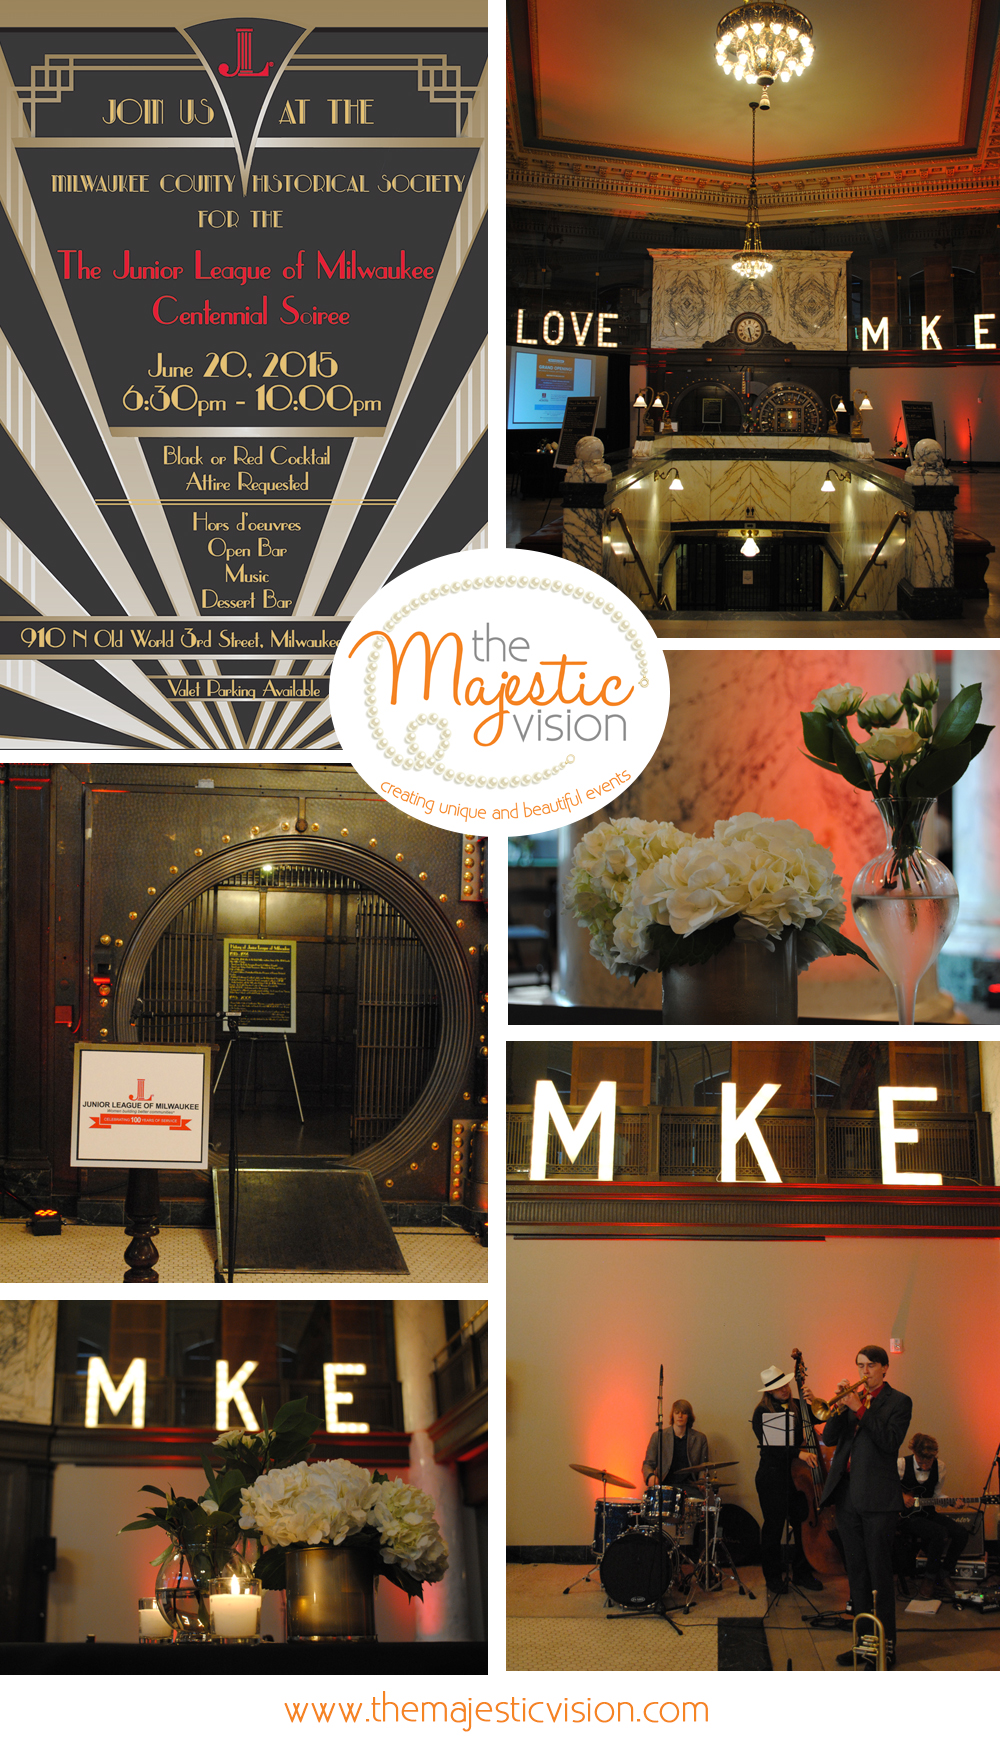 Junior League of Milwaukee Centennial Soiree | The Majestic Vision Wedding Planning | Milwaukee Historical Society in Milwaukee, WI | www.themajesticvision.com